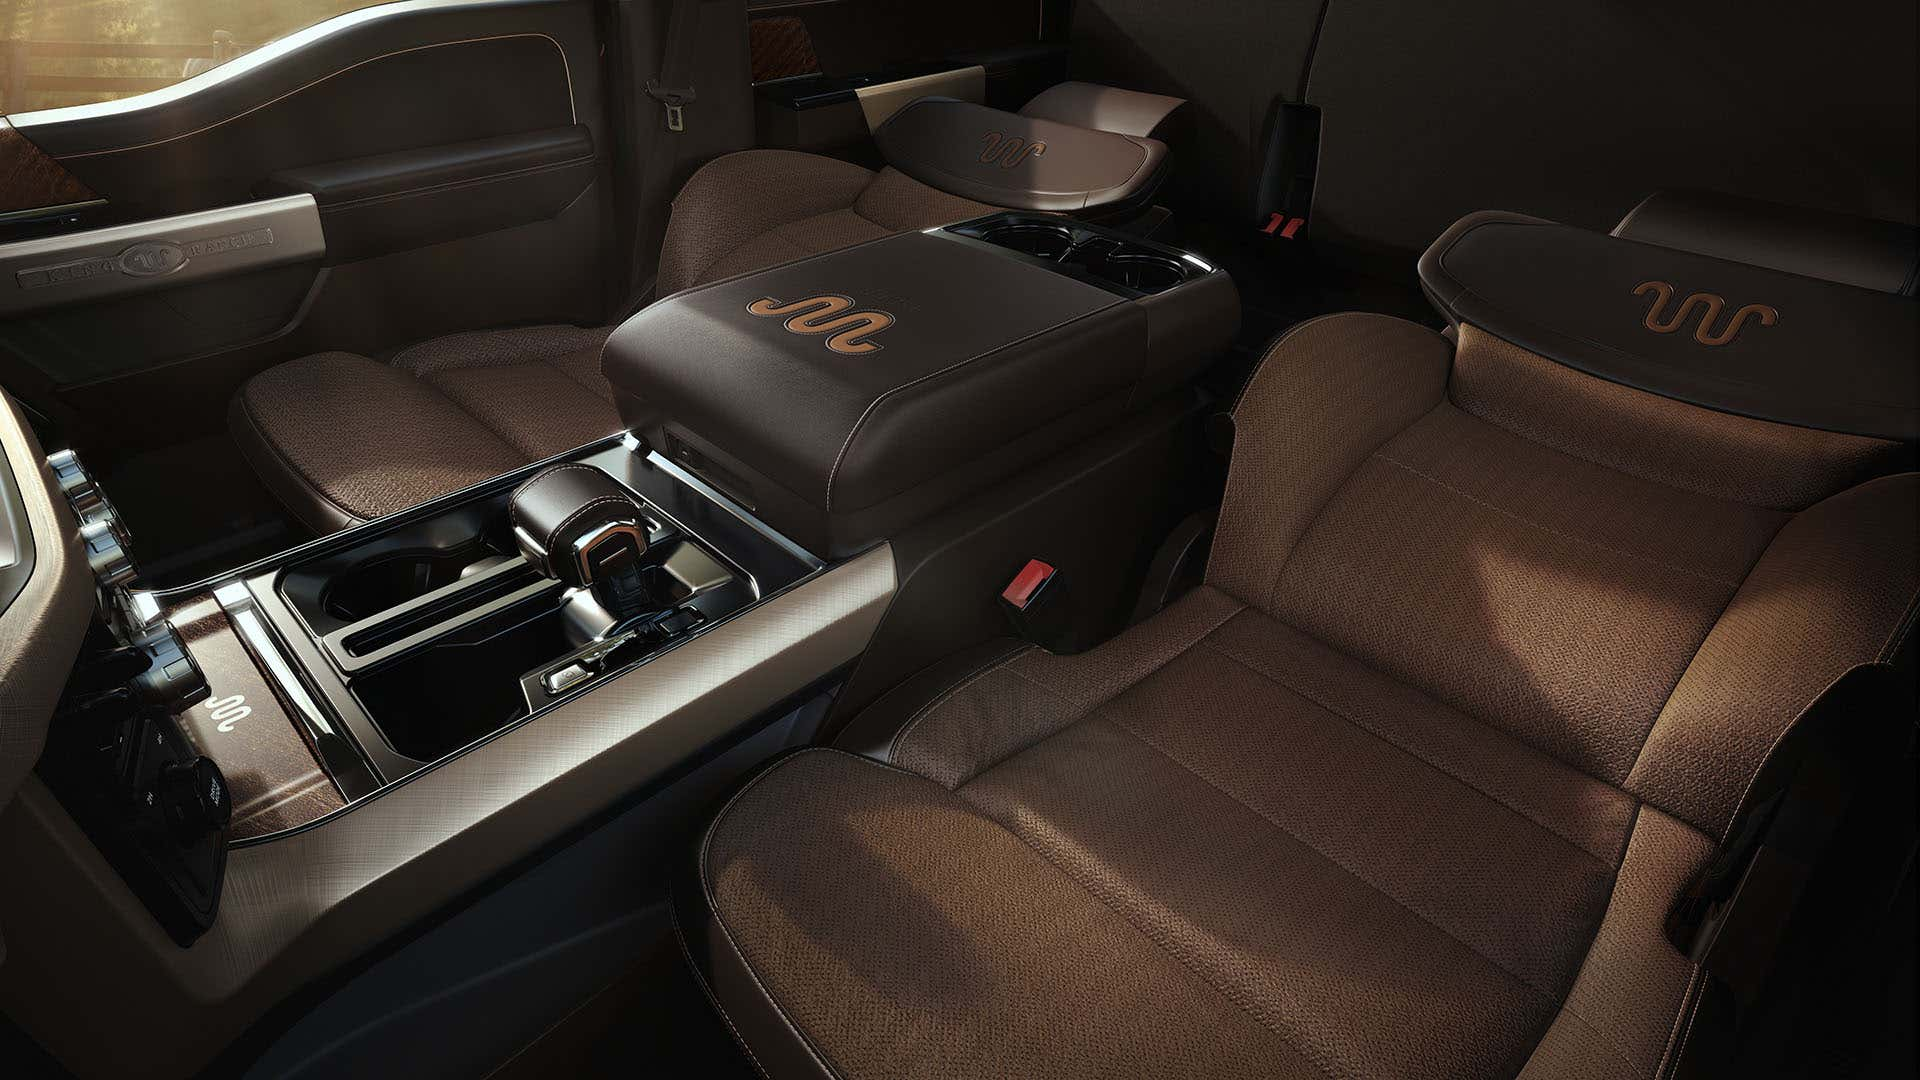 The new 2021 F-150 has front seats that fold flat for sleeping.